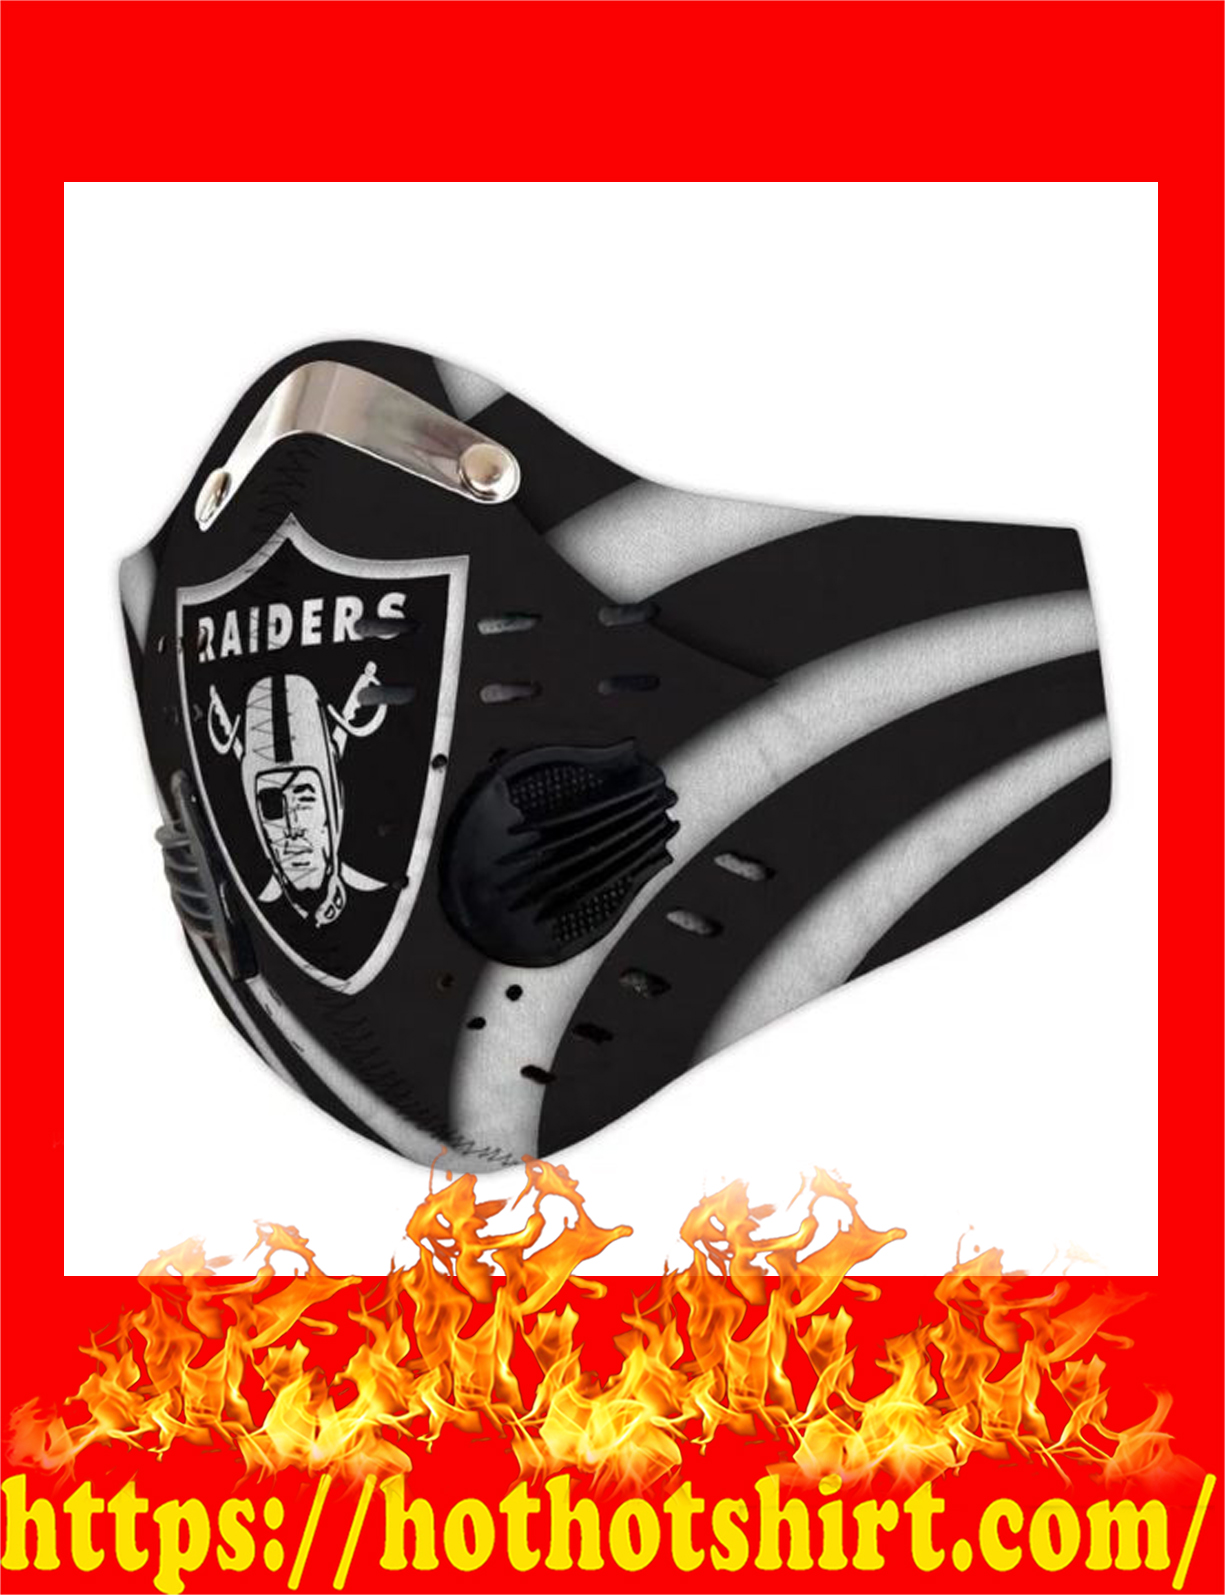 Raiders filter face mask - detail